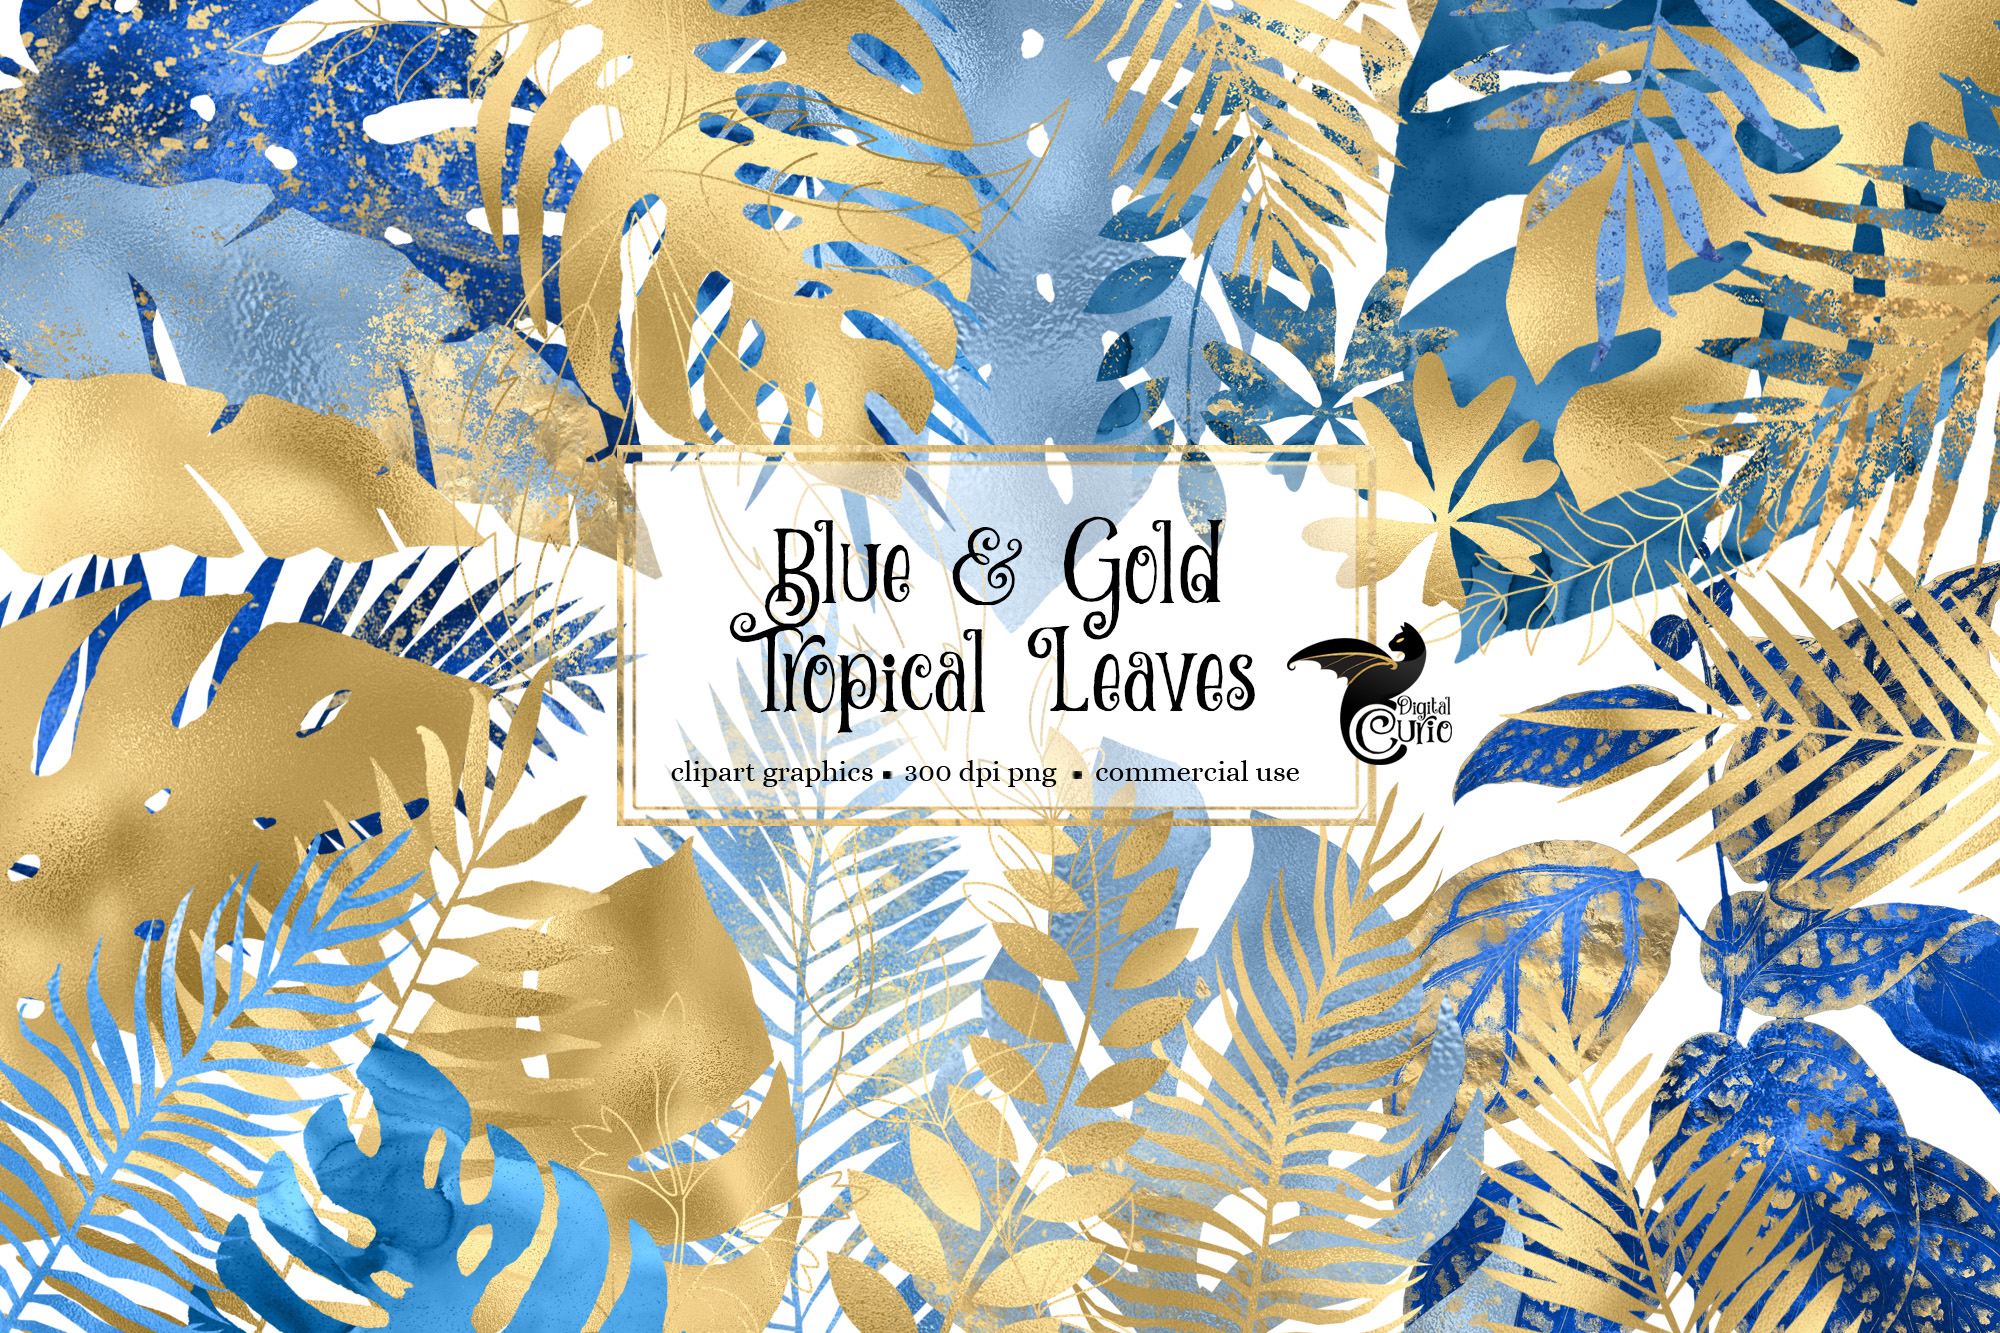 Download Free Blue And Gold Tropical Leaves Clipart Graphic By Digital Curio for Cricut Explore, Silhouette and other cutting machines.